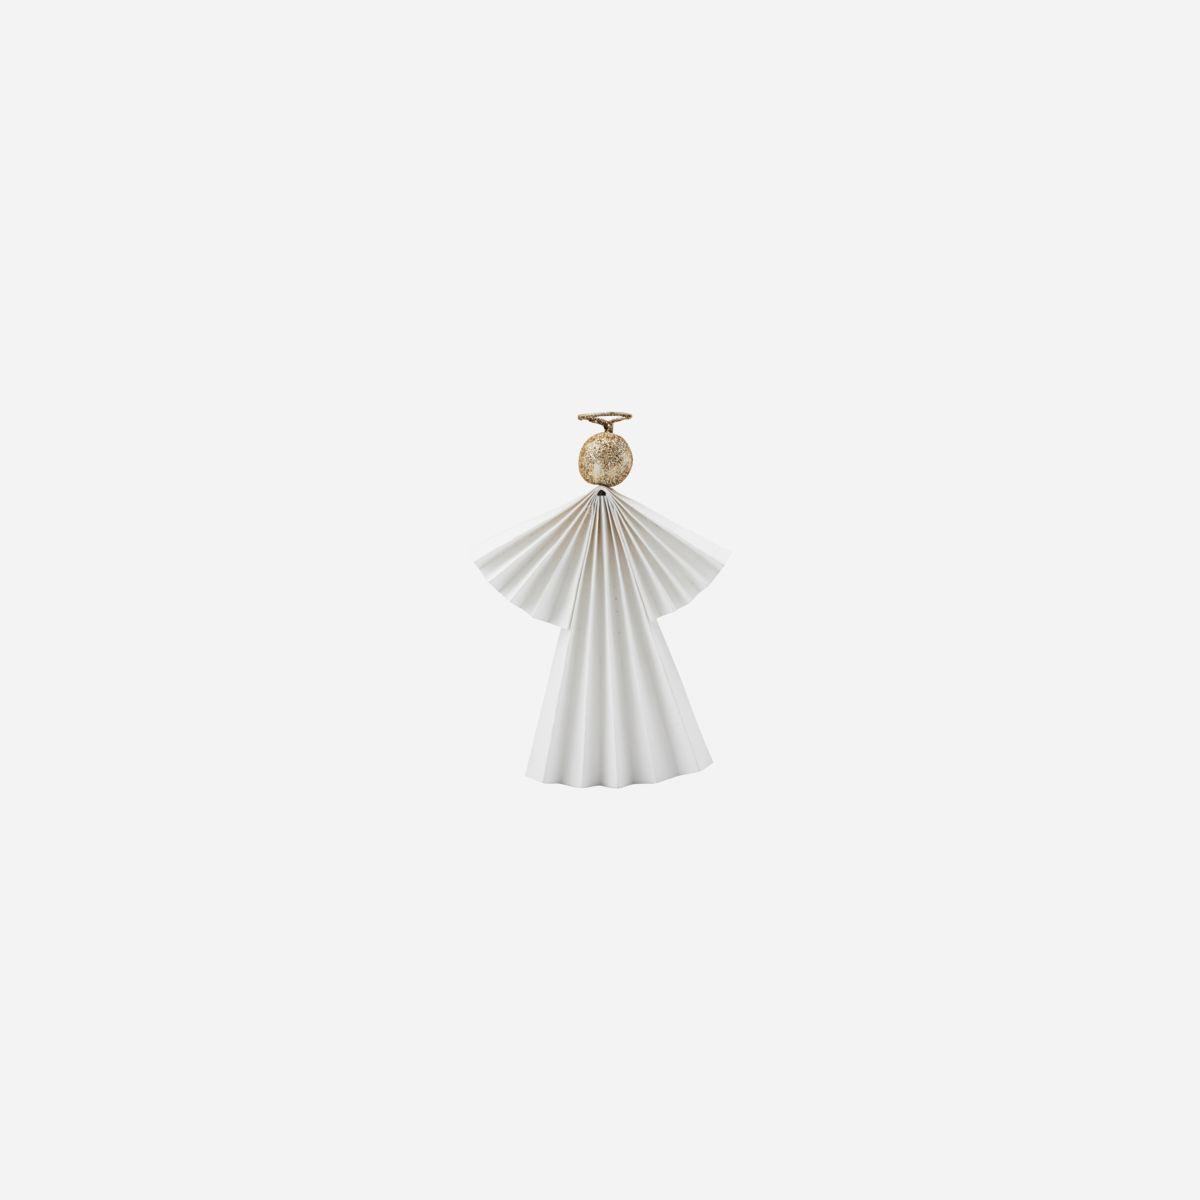 Angel Ornament, White, Small